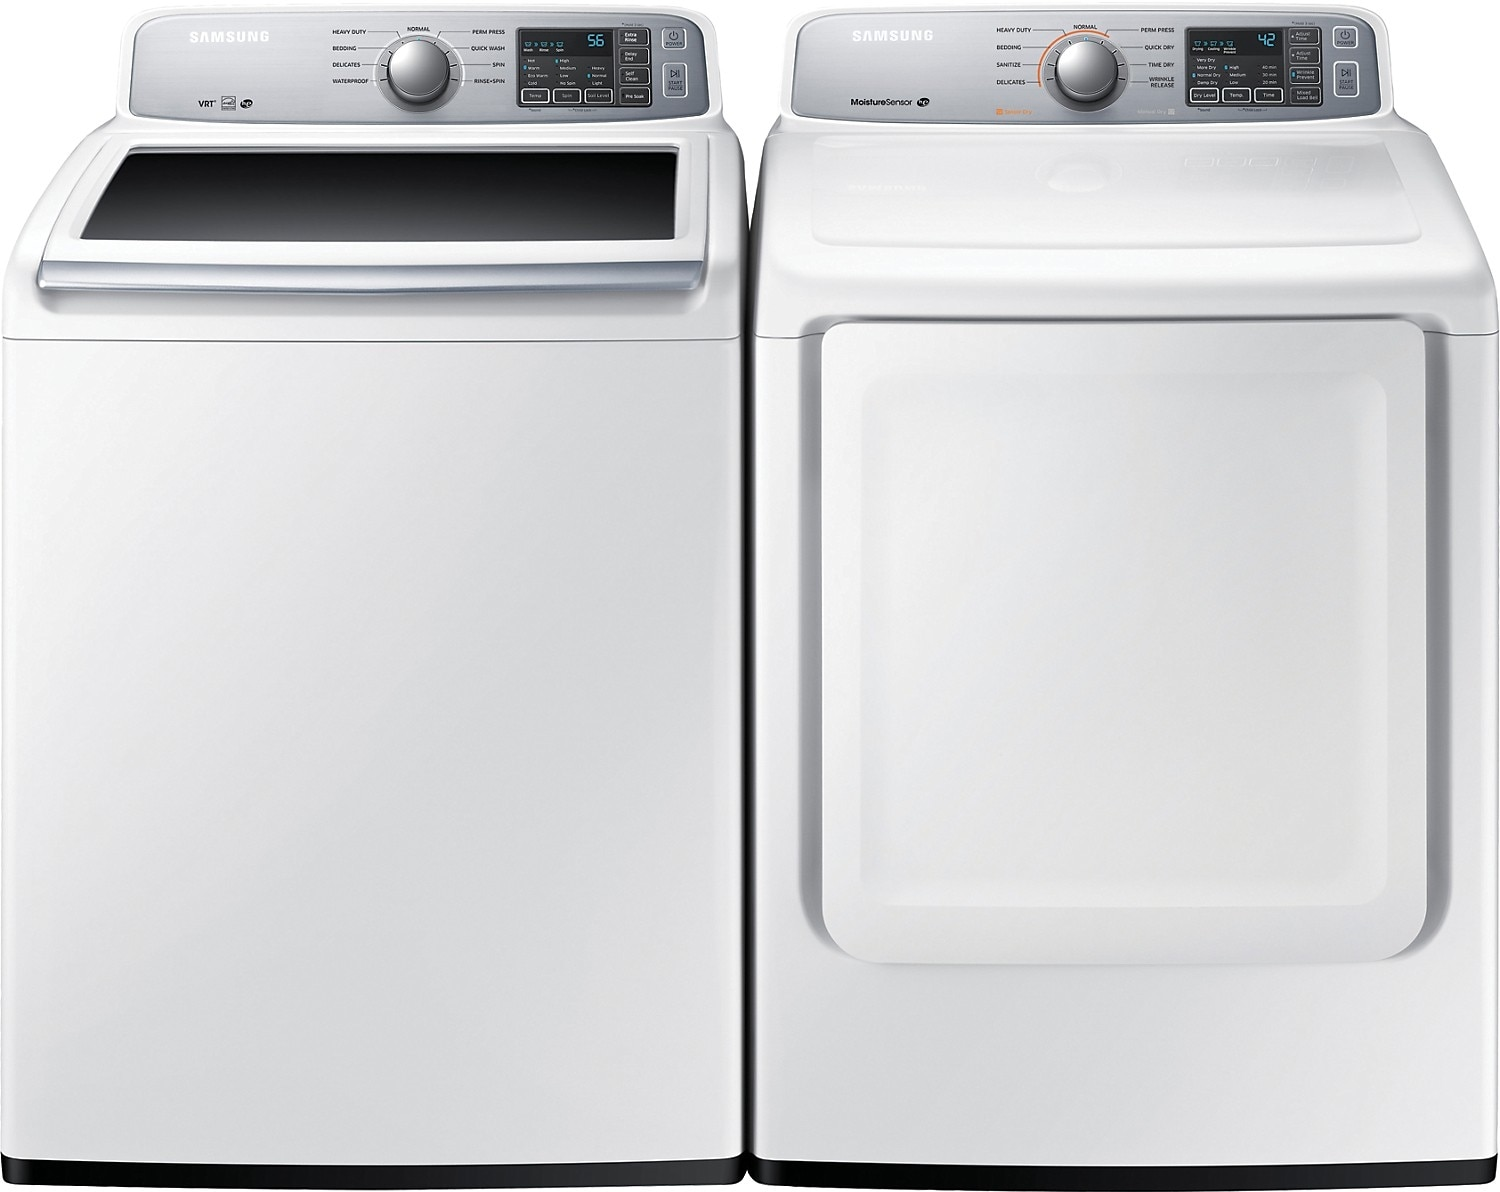 Washers and Dryers - Samsung 5.2 Cu. Ft. Top-Load Washer and 7.4 Cu ...